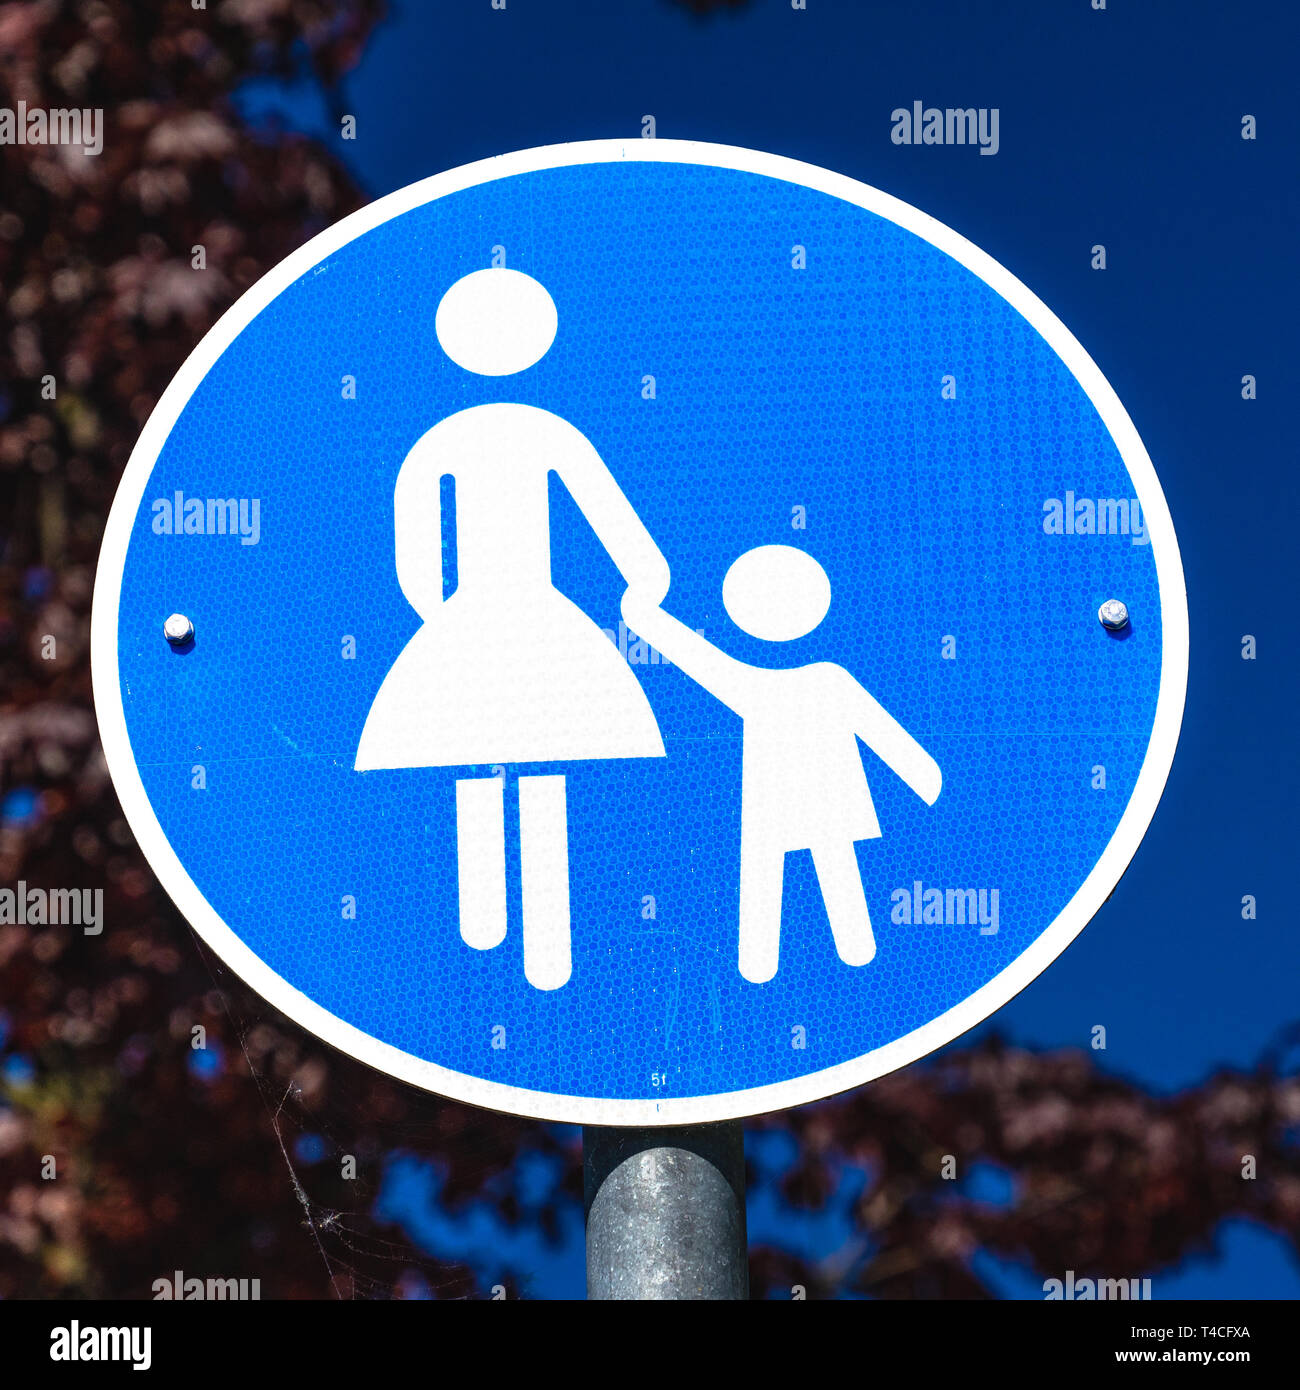 Information sign for a footpath for pedestrians only, symbolized by a figure with skirt and a child figure, not gender correct, Germany Stock Photo